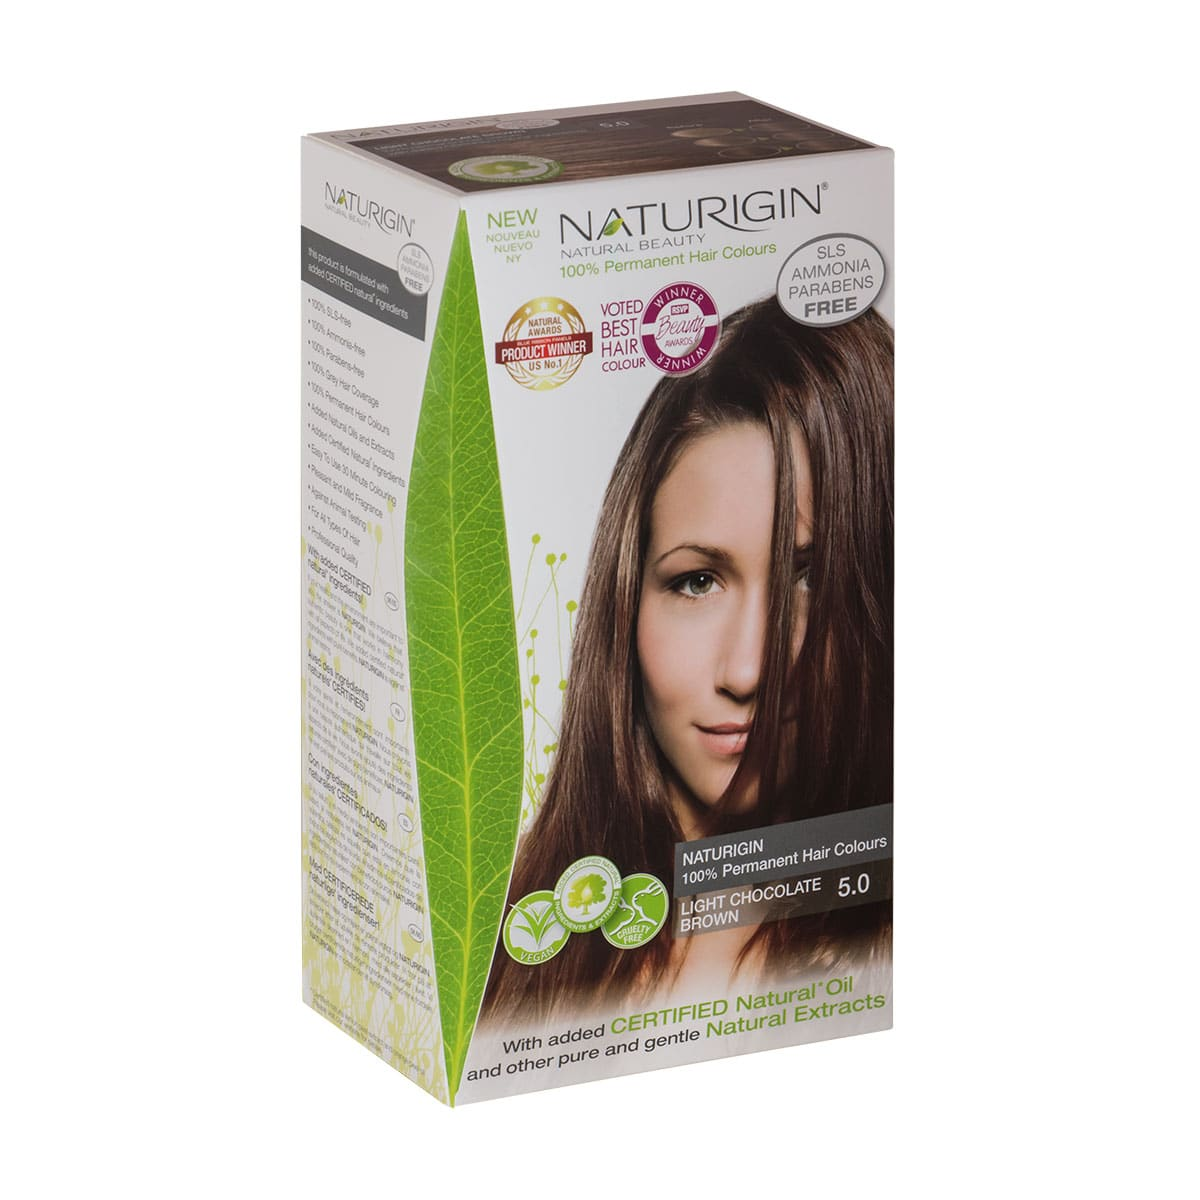 Naturigin Permanent Hair Colour Light Chocolate Brown 50 The